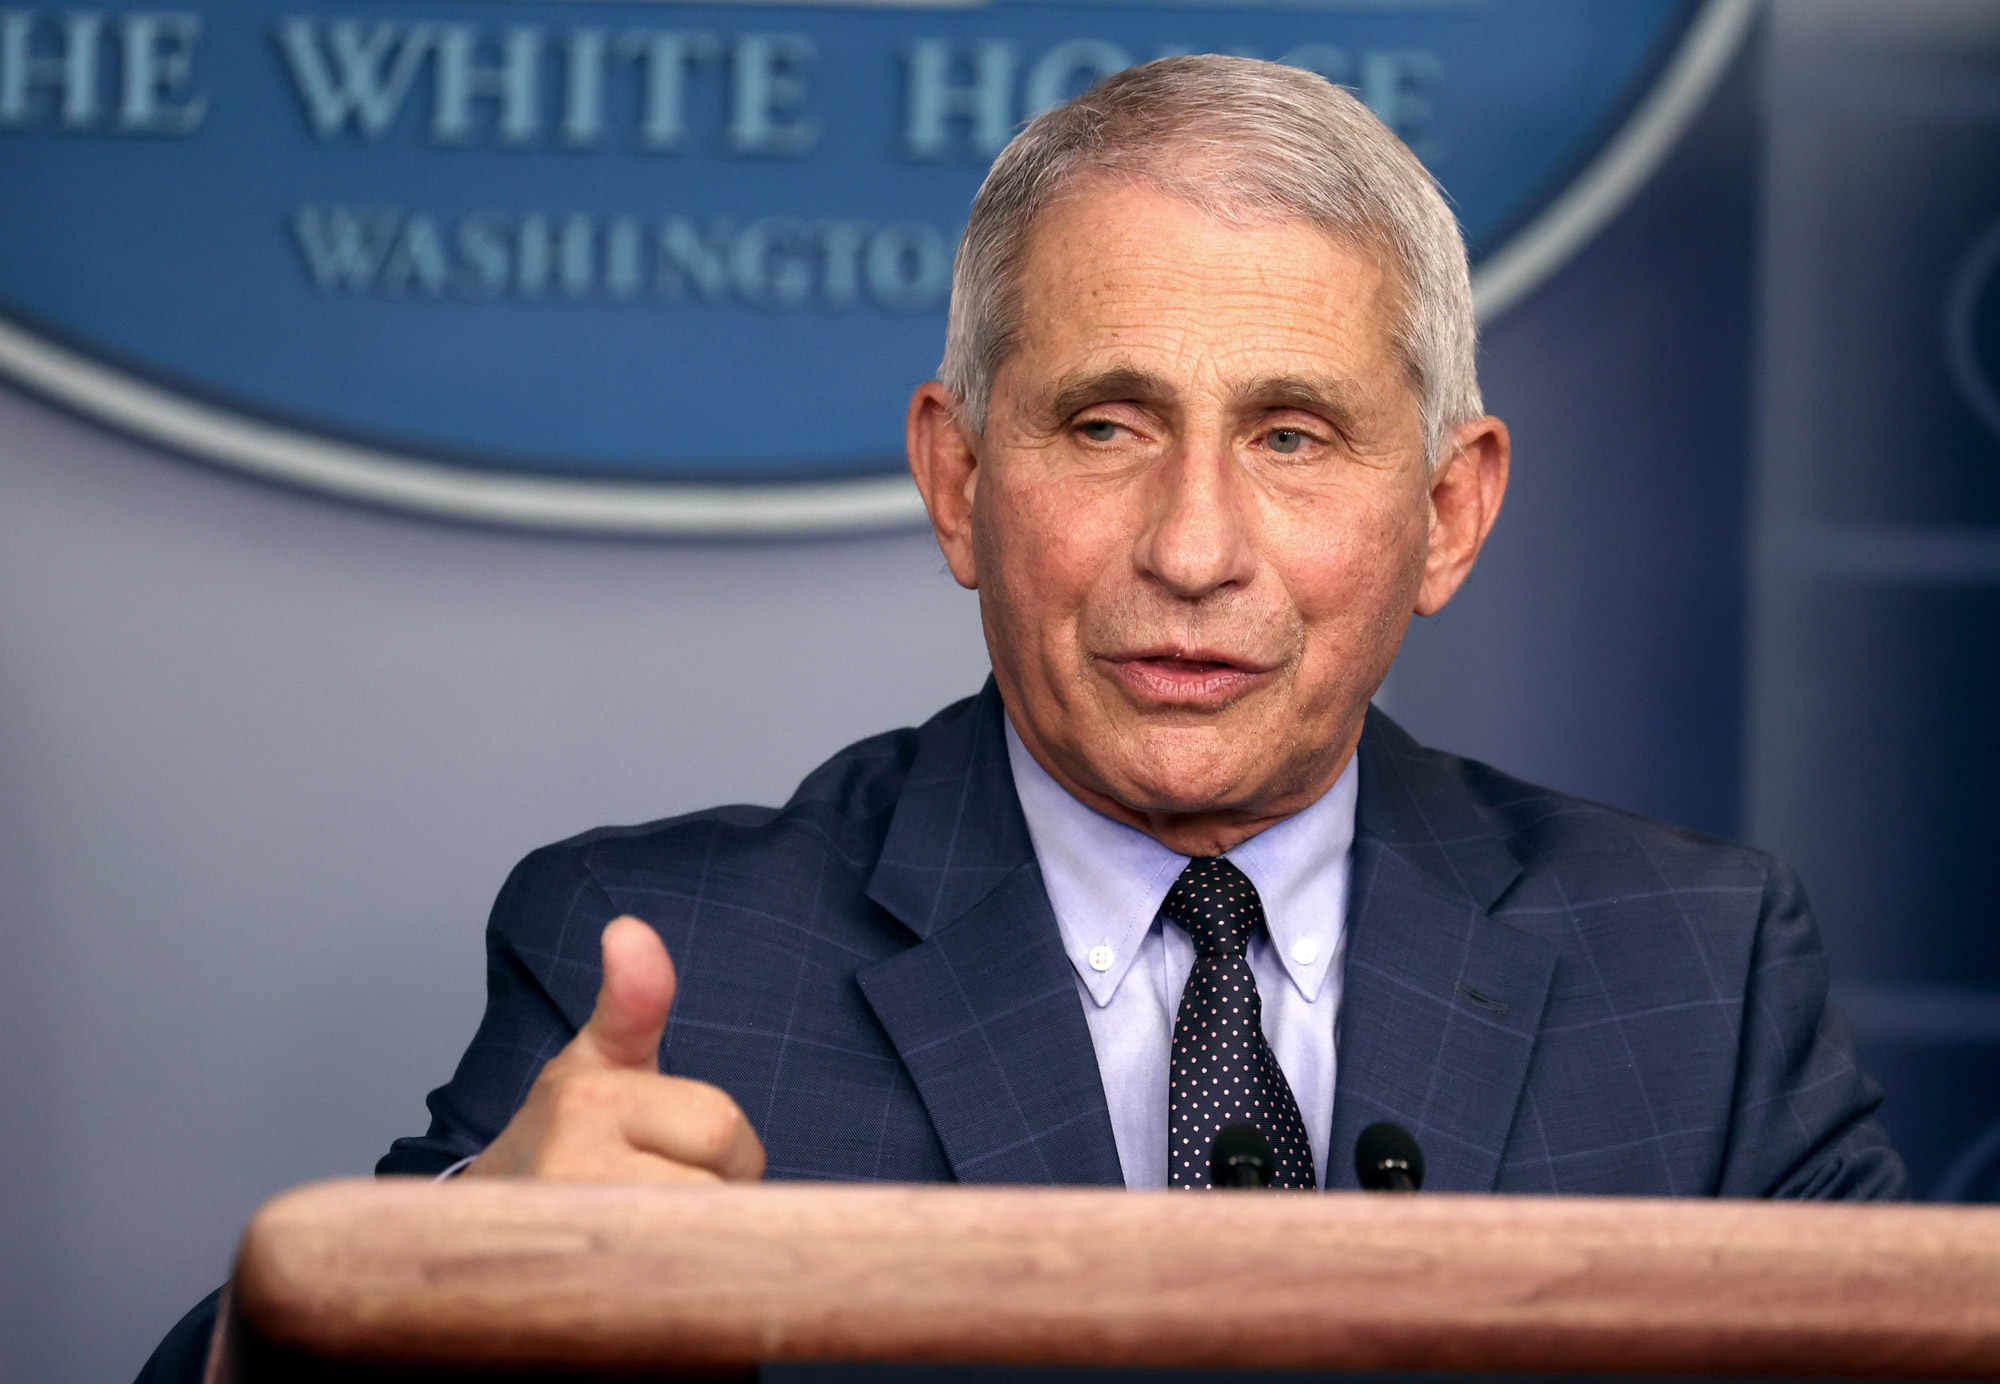 Dr. Anthony Fauci, director of the National Institute of Allergy and Infectious Diseases, speaks during a White House Coronavirus Task Force press briefing at the White House on November 19 in Washington, DC.